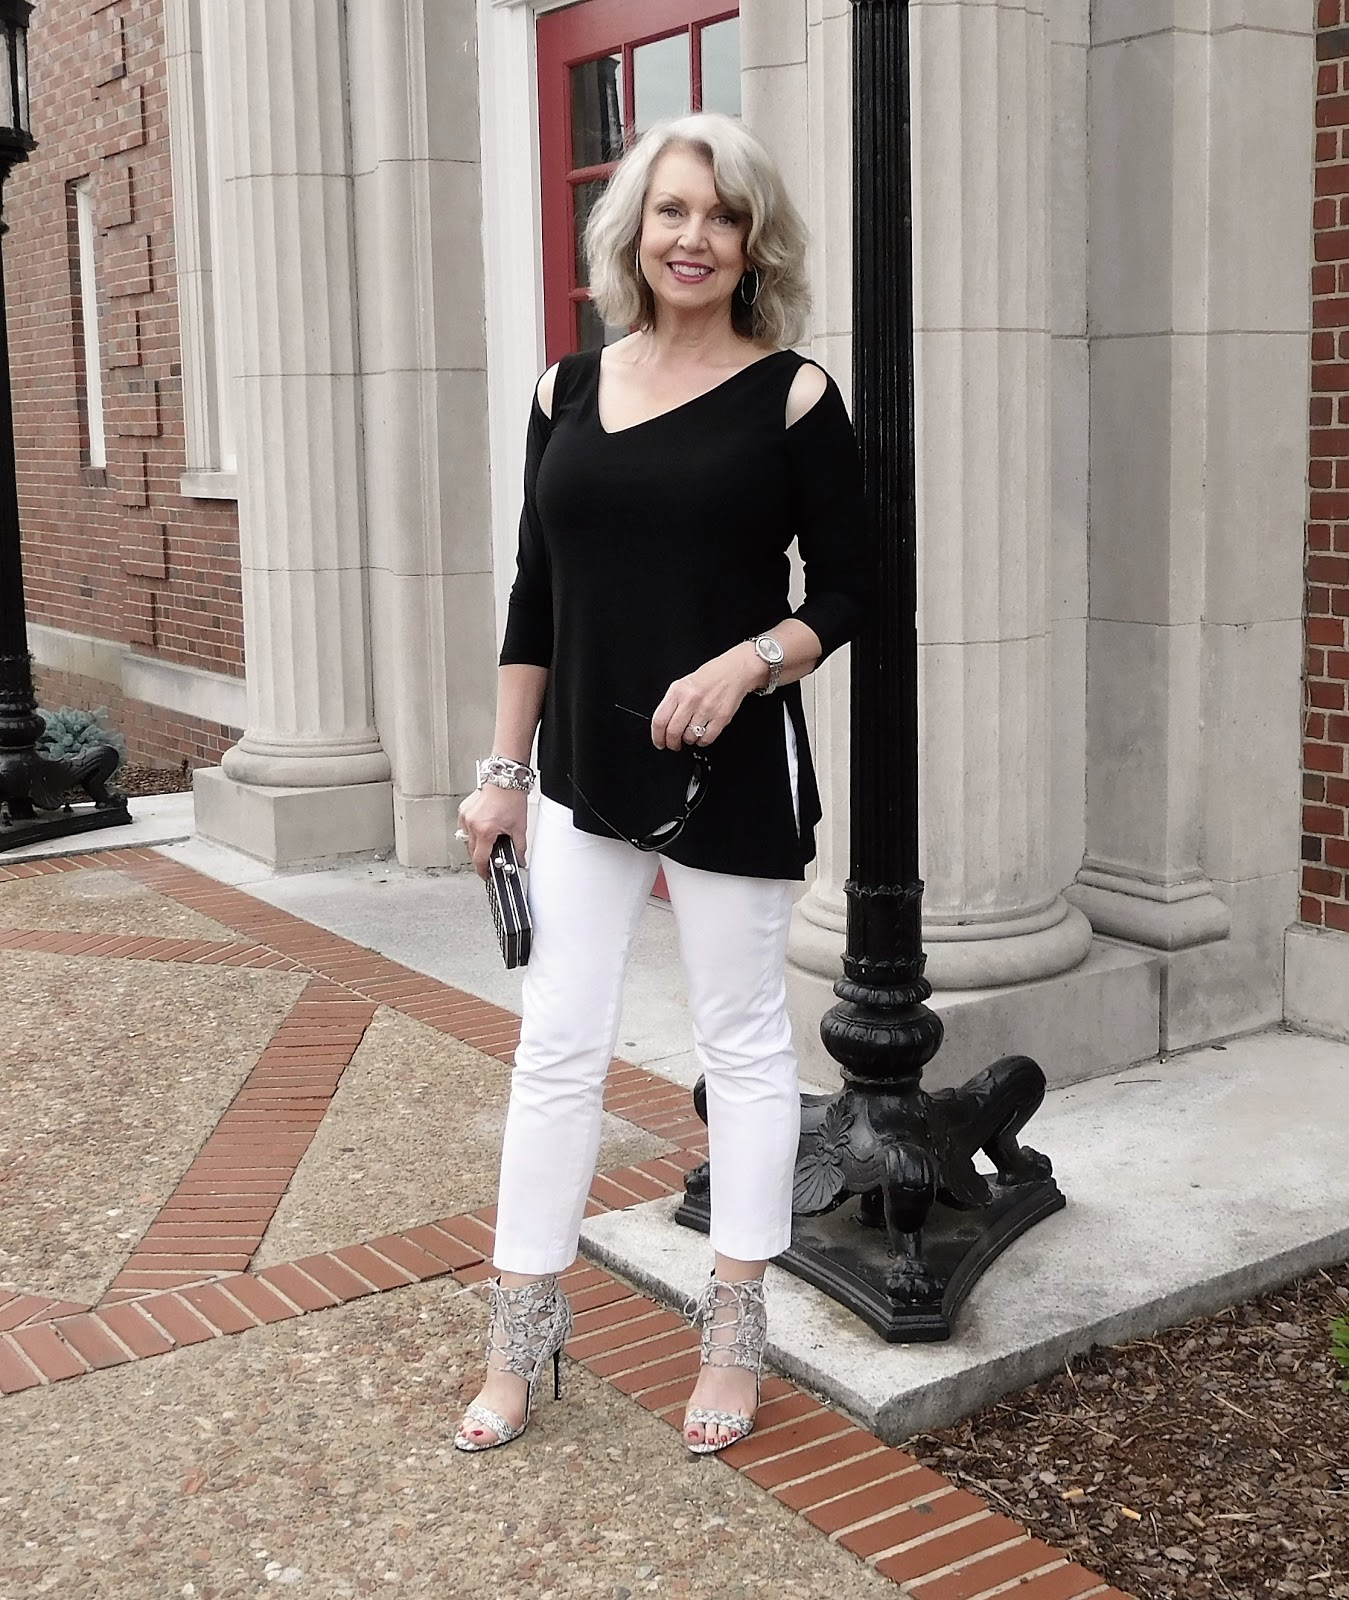 Blog for 50 year old woman